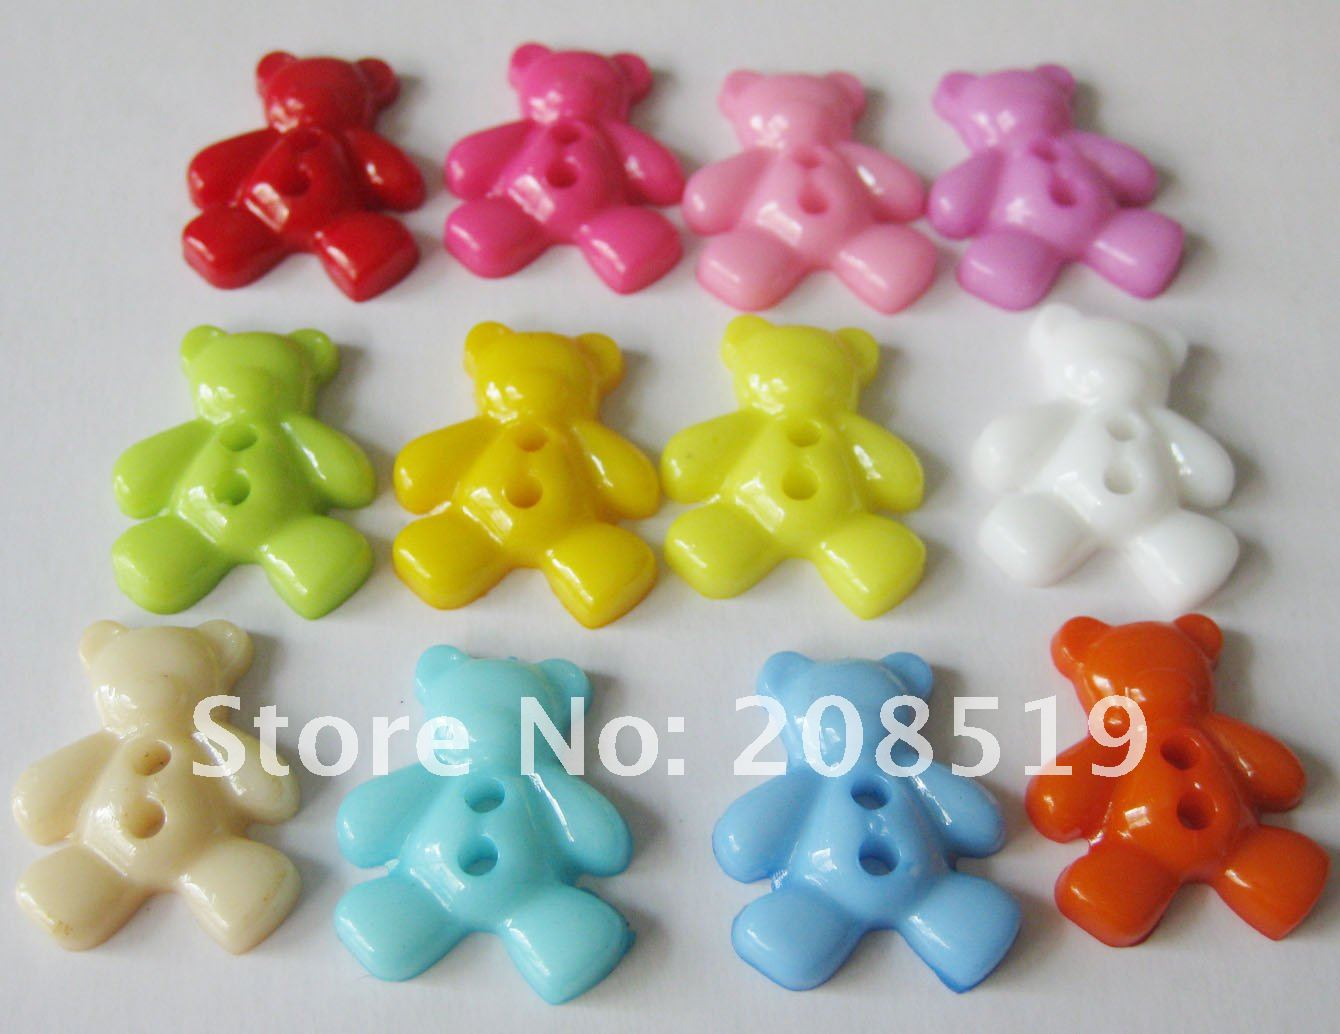 NB075 fashion buttons 500pcs cartoon buttons BEAR shape children buttons fashion plastic buttons